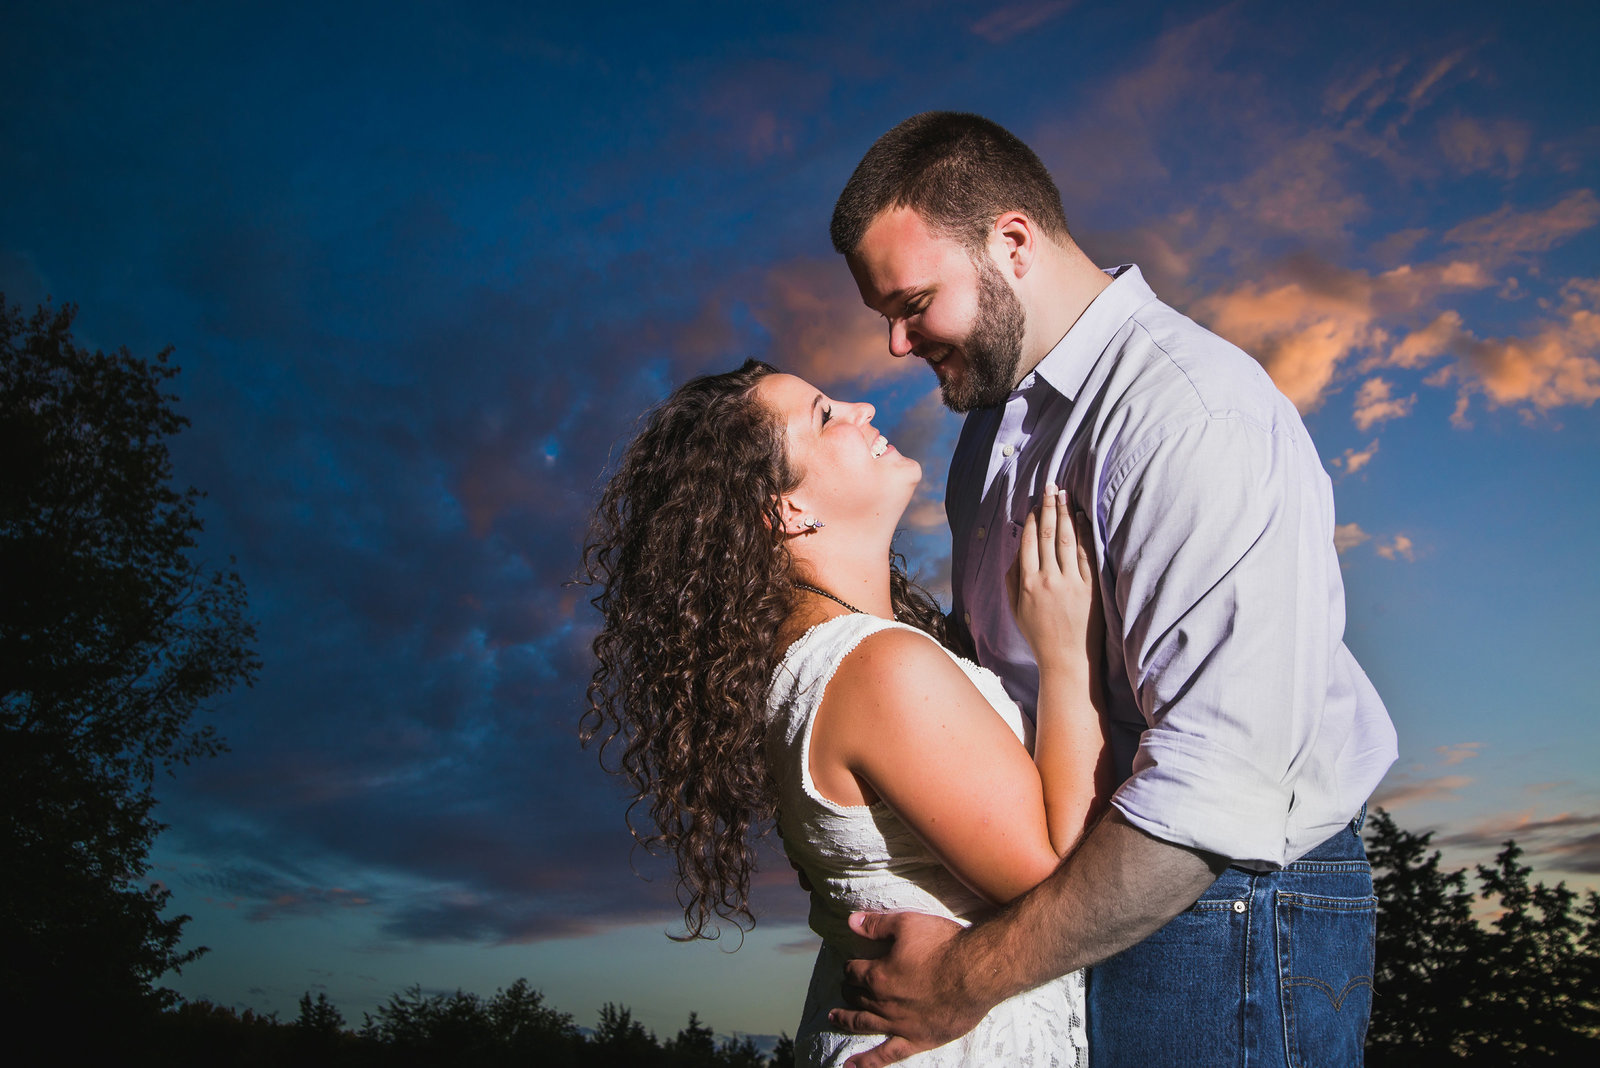 NJ_Rustic_Engagement_Photography183